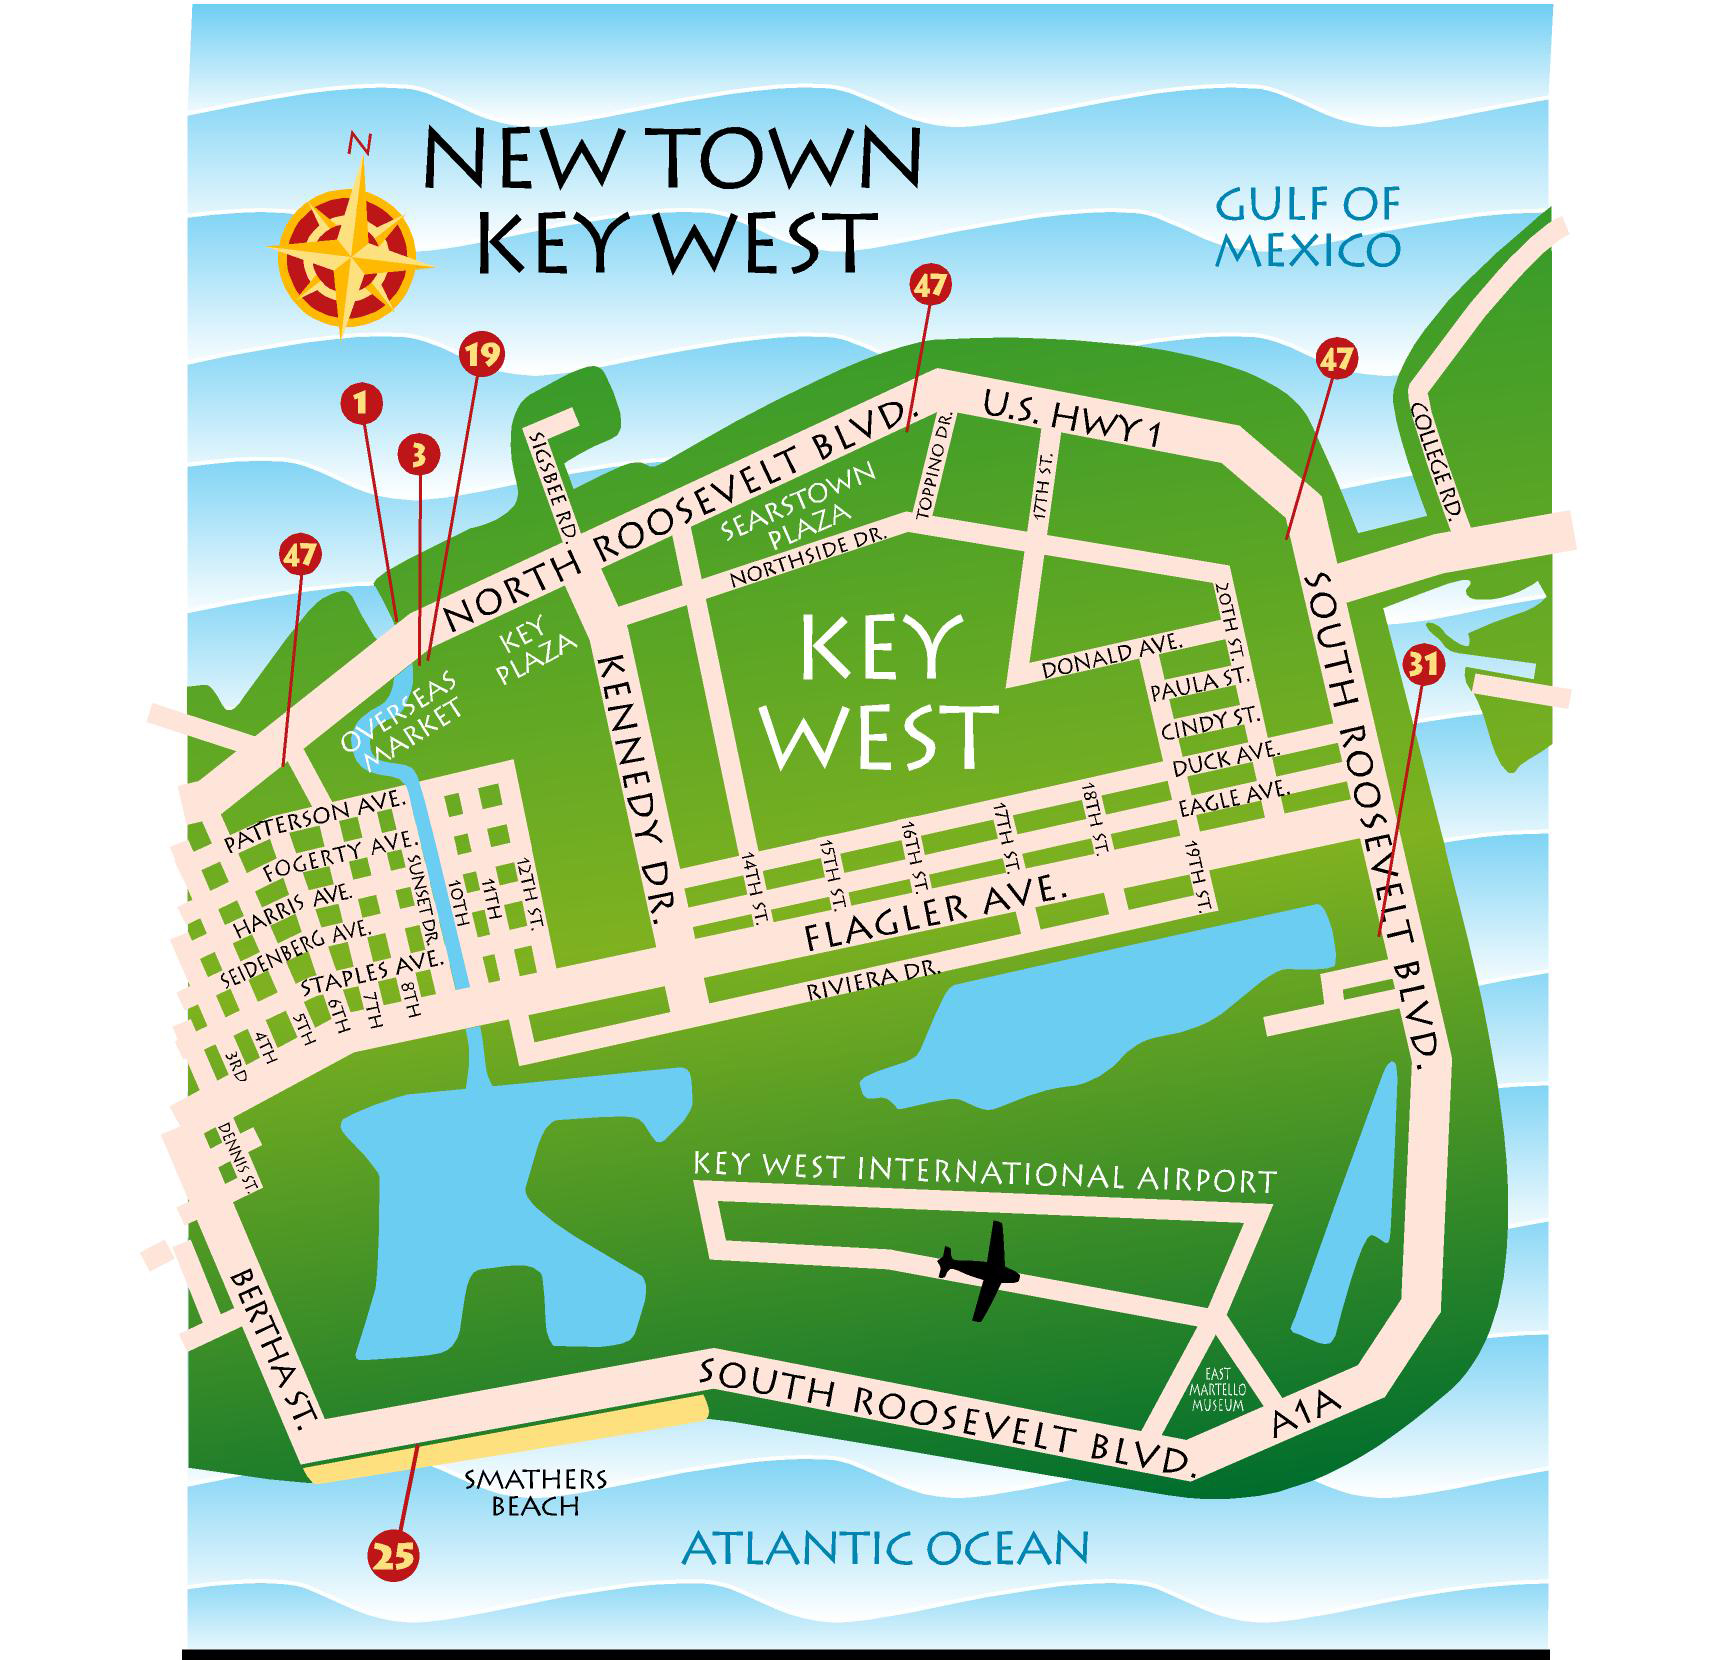 Maps Key West Florida Keys Key West Florida Keys